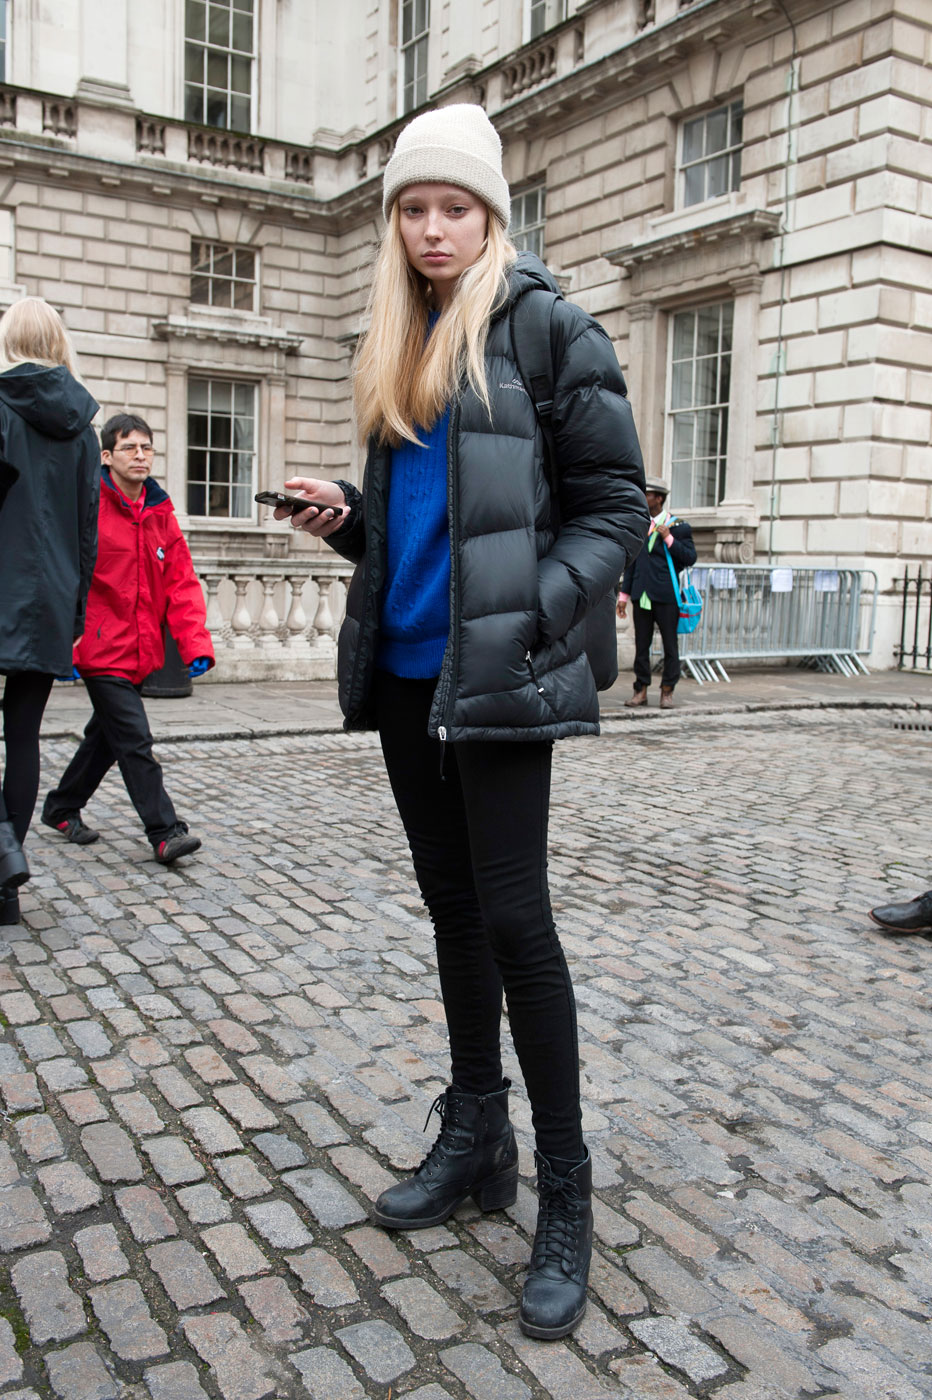 The Best Of London Fashion Week Street Style 2015 Day 1 The Impression